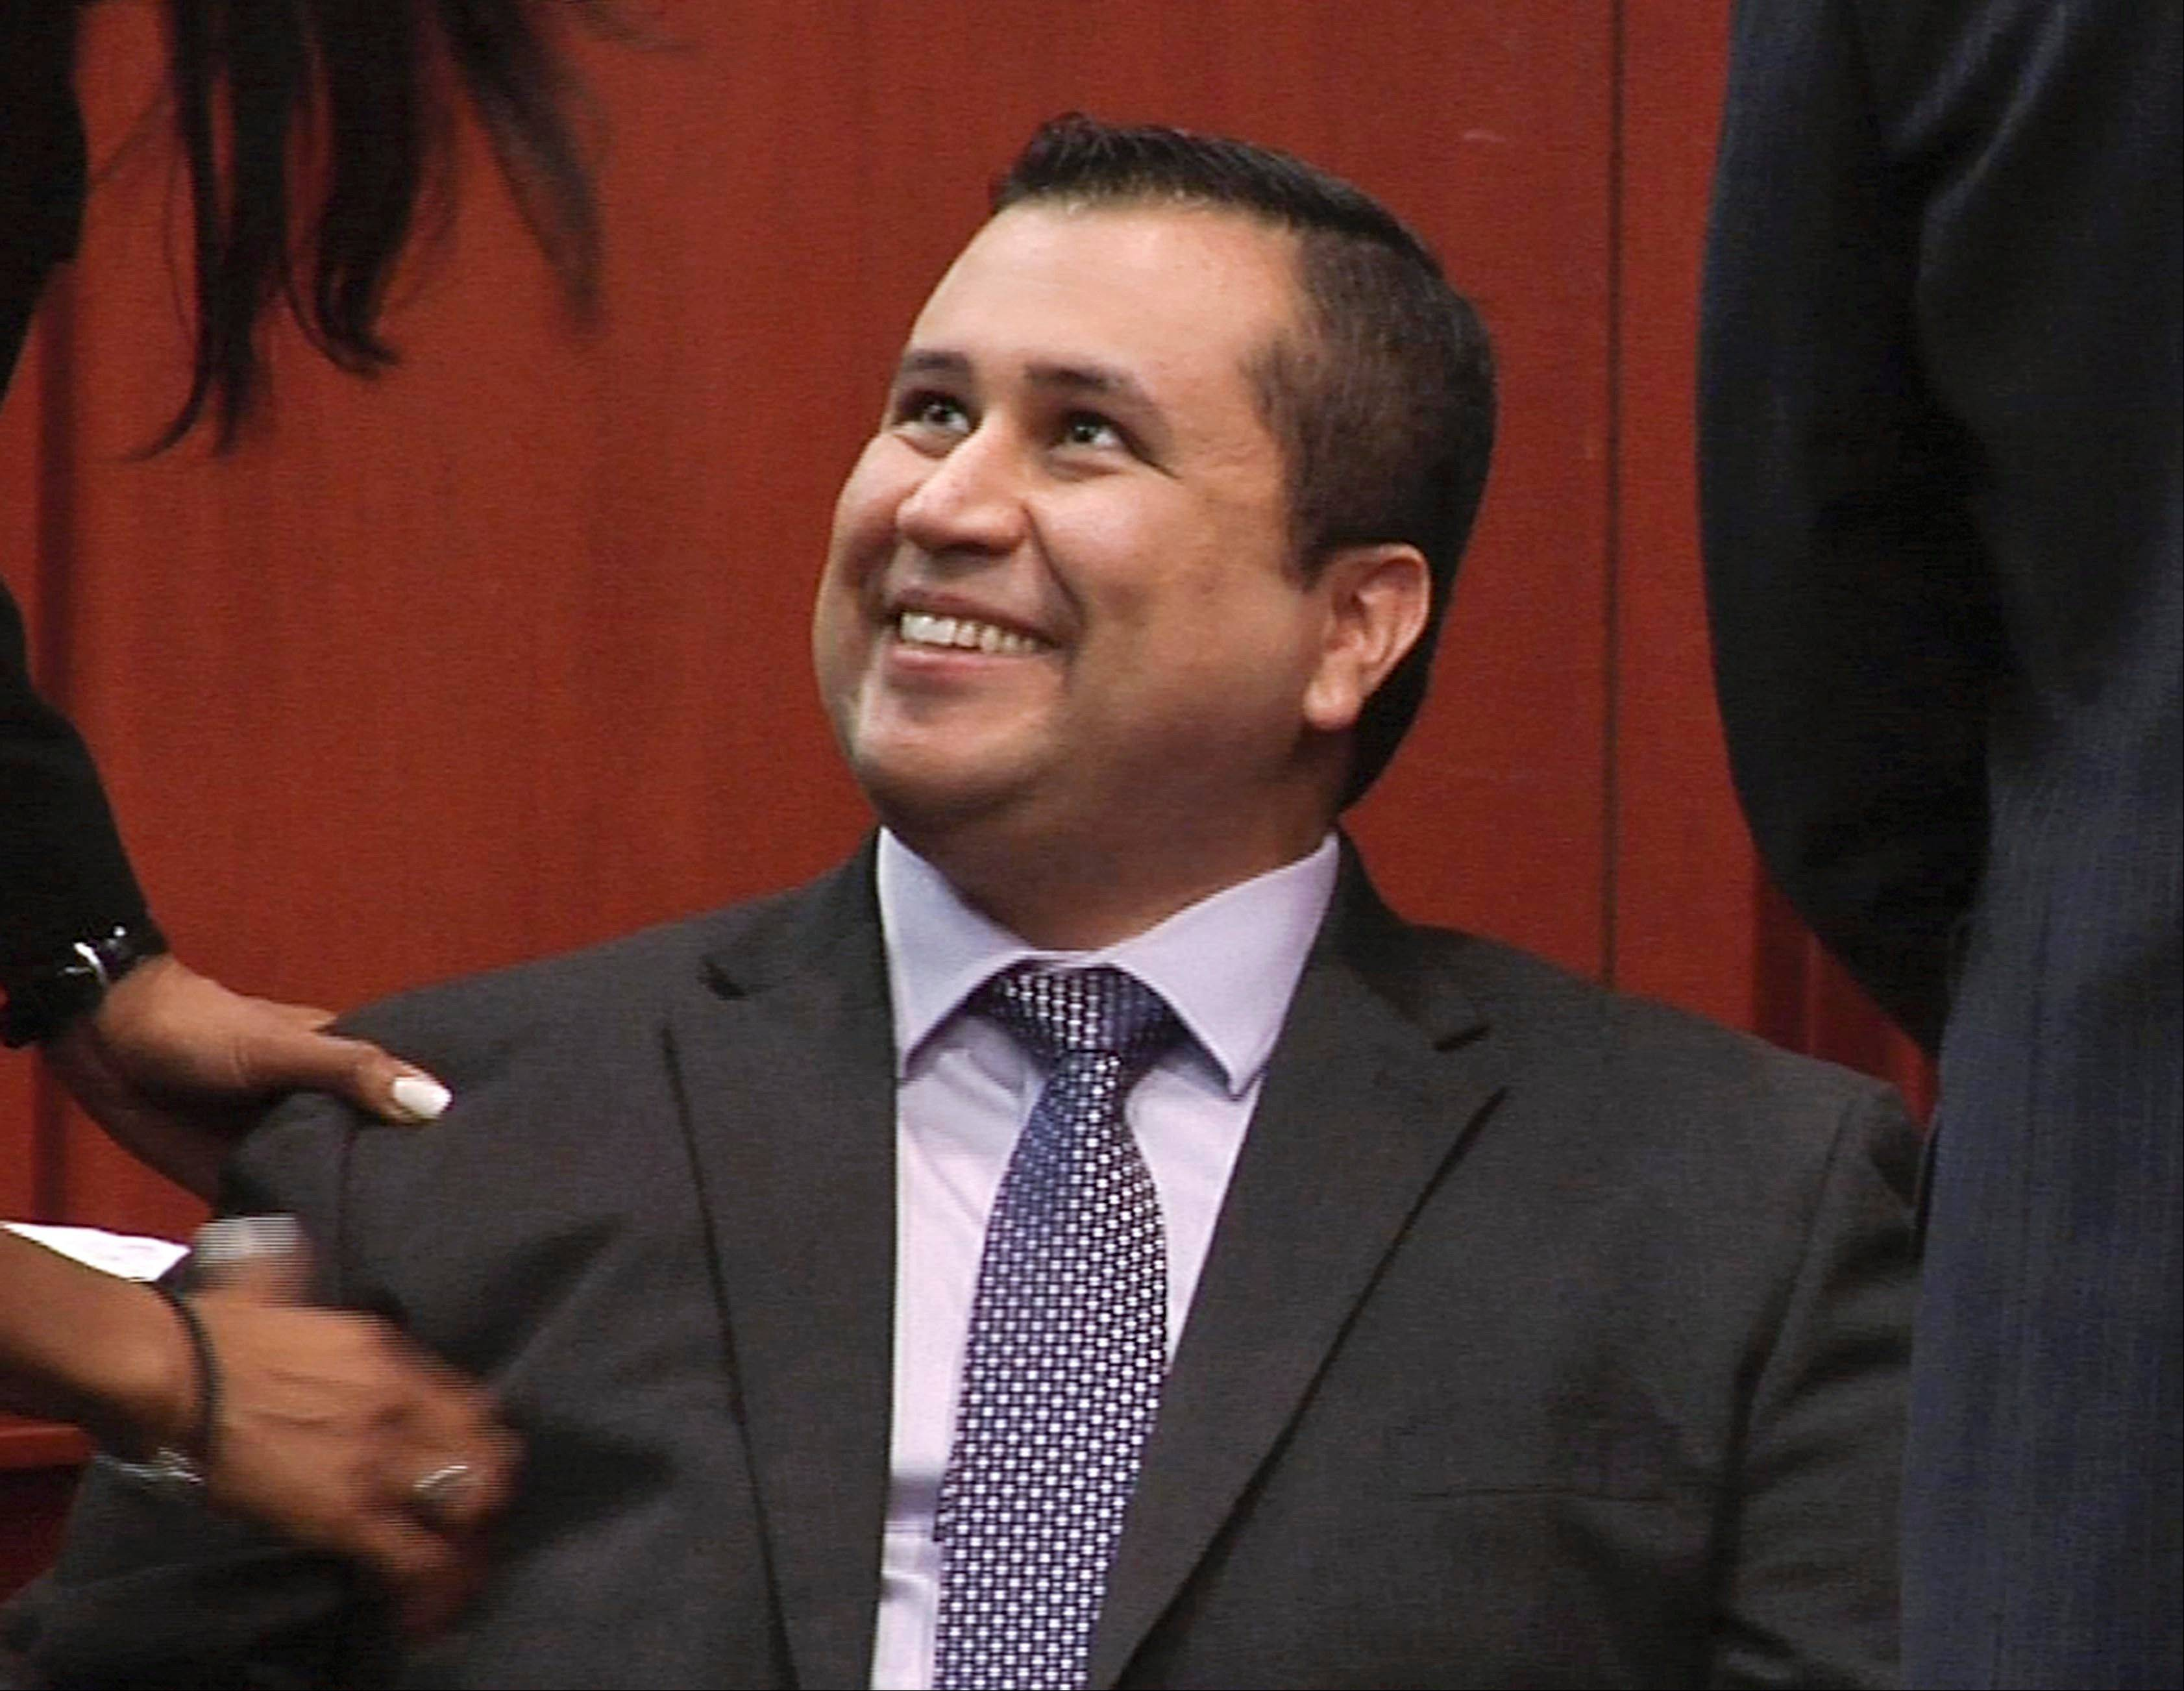 In this image from video, George Zimmerman smiles after a not guilty verdict was handed down in his trial Saturday at the Seminole County Courthouse in Sanford, Fla. Neighborhood watch captain George Zimmerman was cleared of all charges Saturday in the shooting of Trayvon Martin, the unarmed black teenager whose killing unleashed furious debate across the U.S. over racial profiling, self-defense and equal justice.